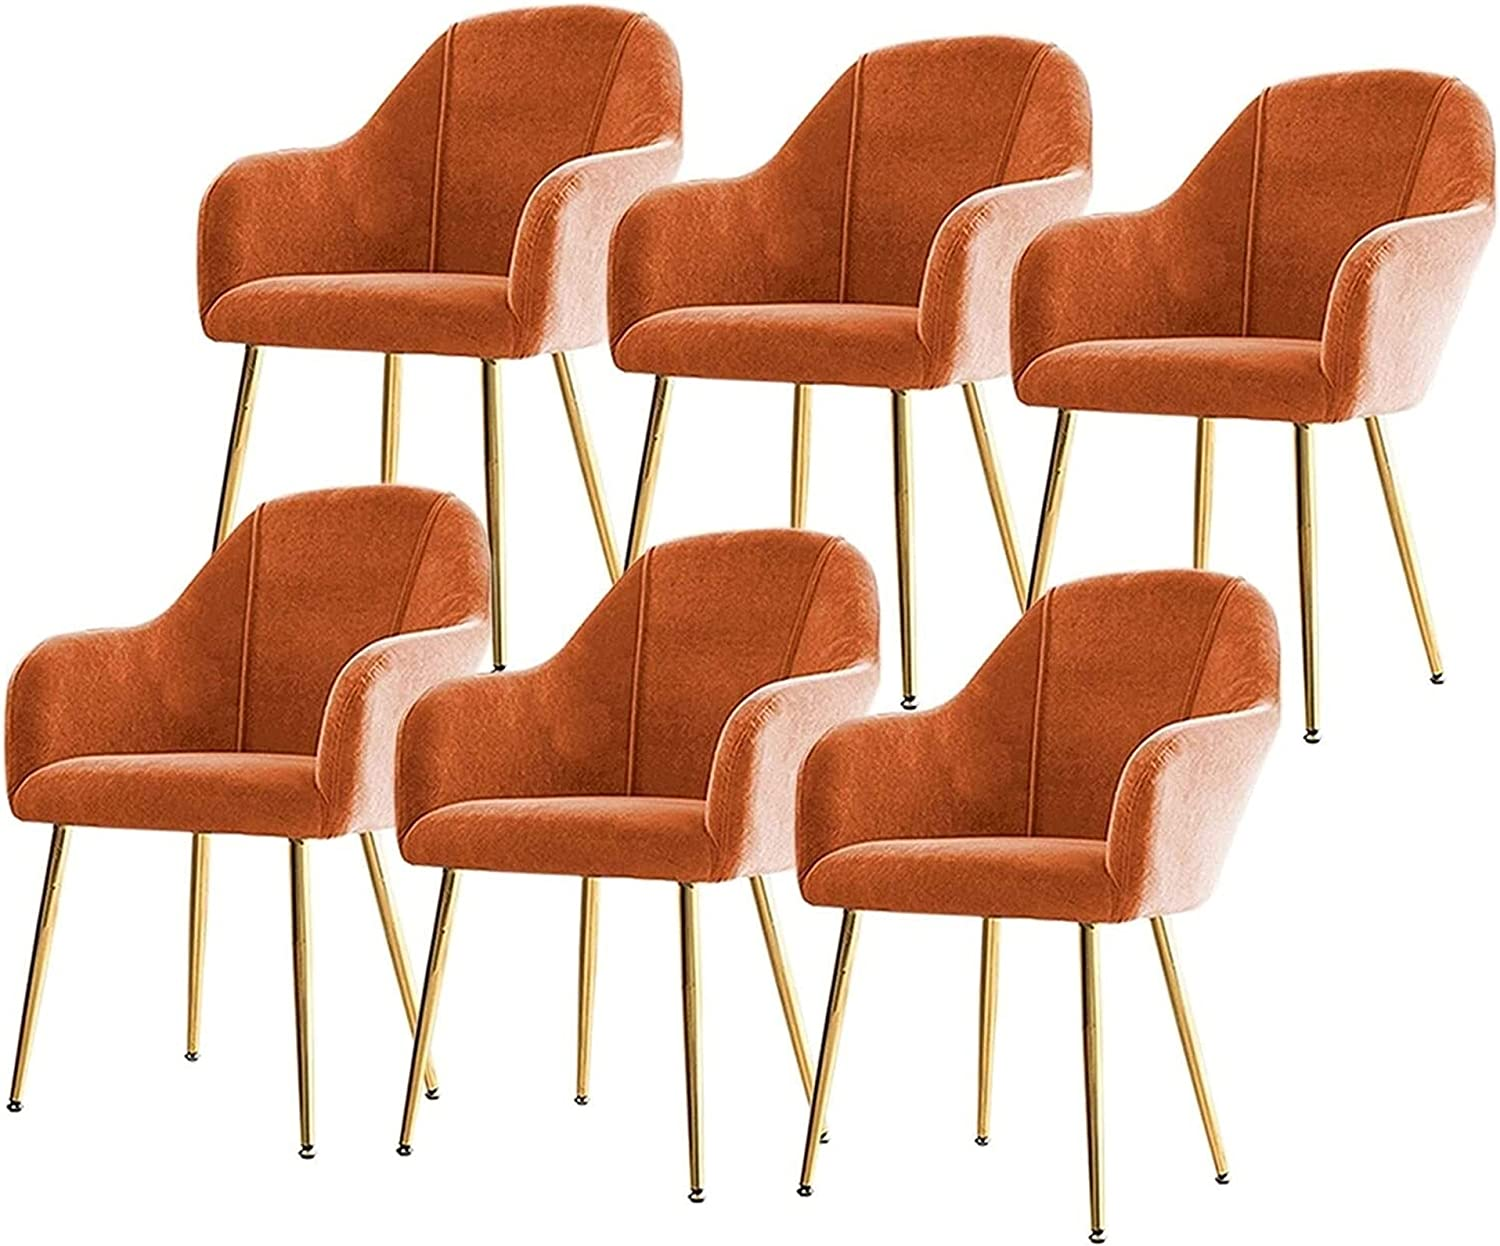 VEESYV Dining Chairs Set of 6 Velvet with Soft Max Max 90% OFF 81% OFF Cushion Back and